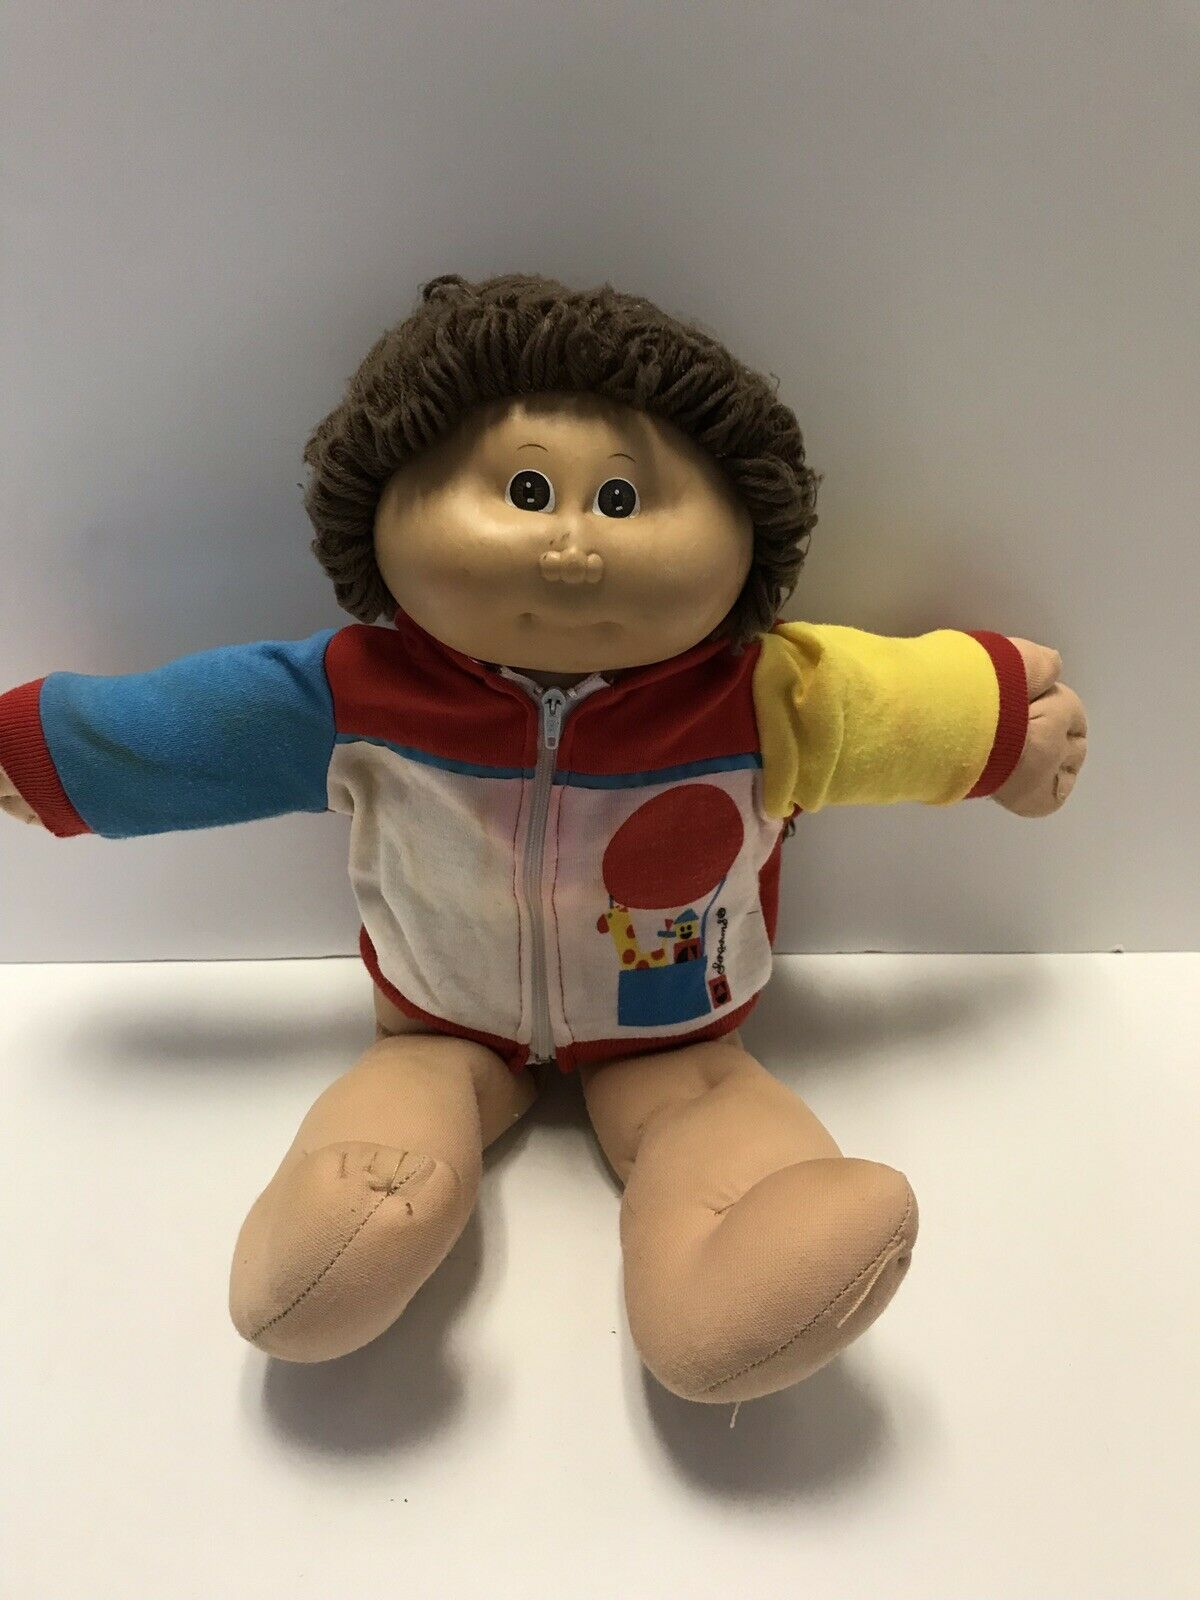 Authentic 1983 1984 Cabbage Patch Kids Doll Dark braun Hair DARLING CUTE